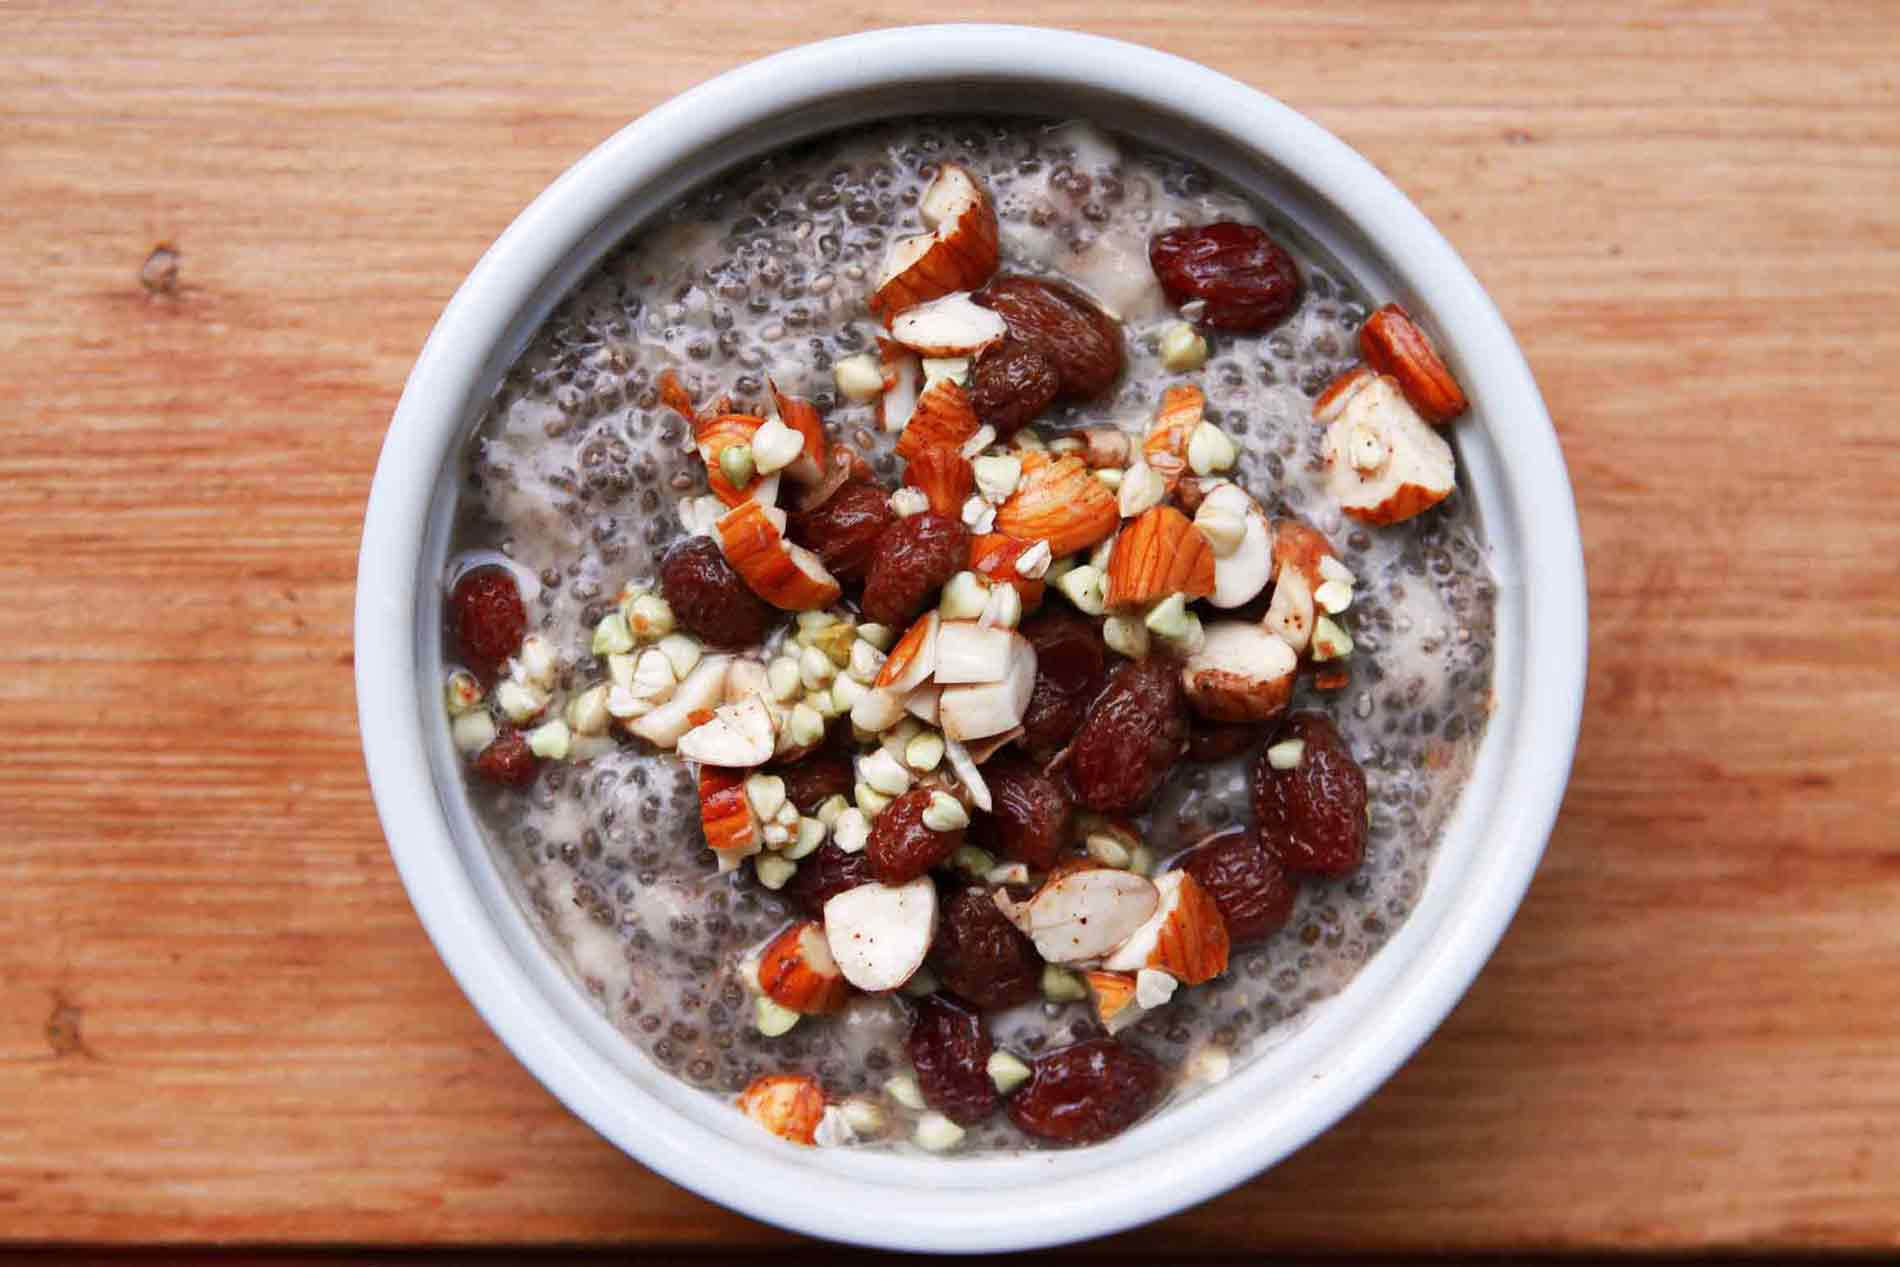 Chia Seed Breakfast Recipe  Chia Seeds Breakfast Recipe That is Good for Overall Health